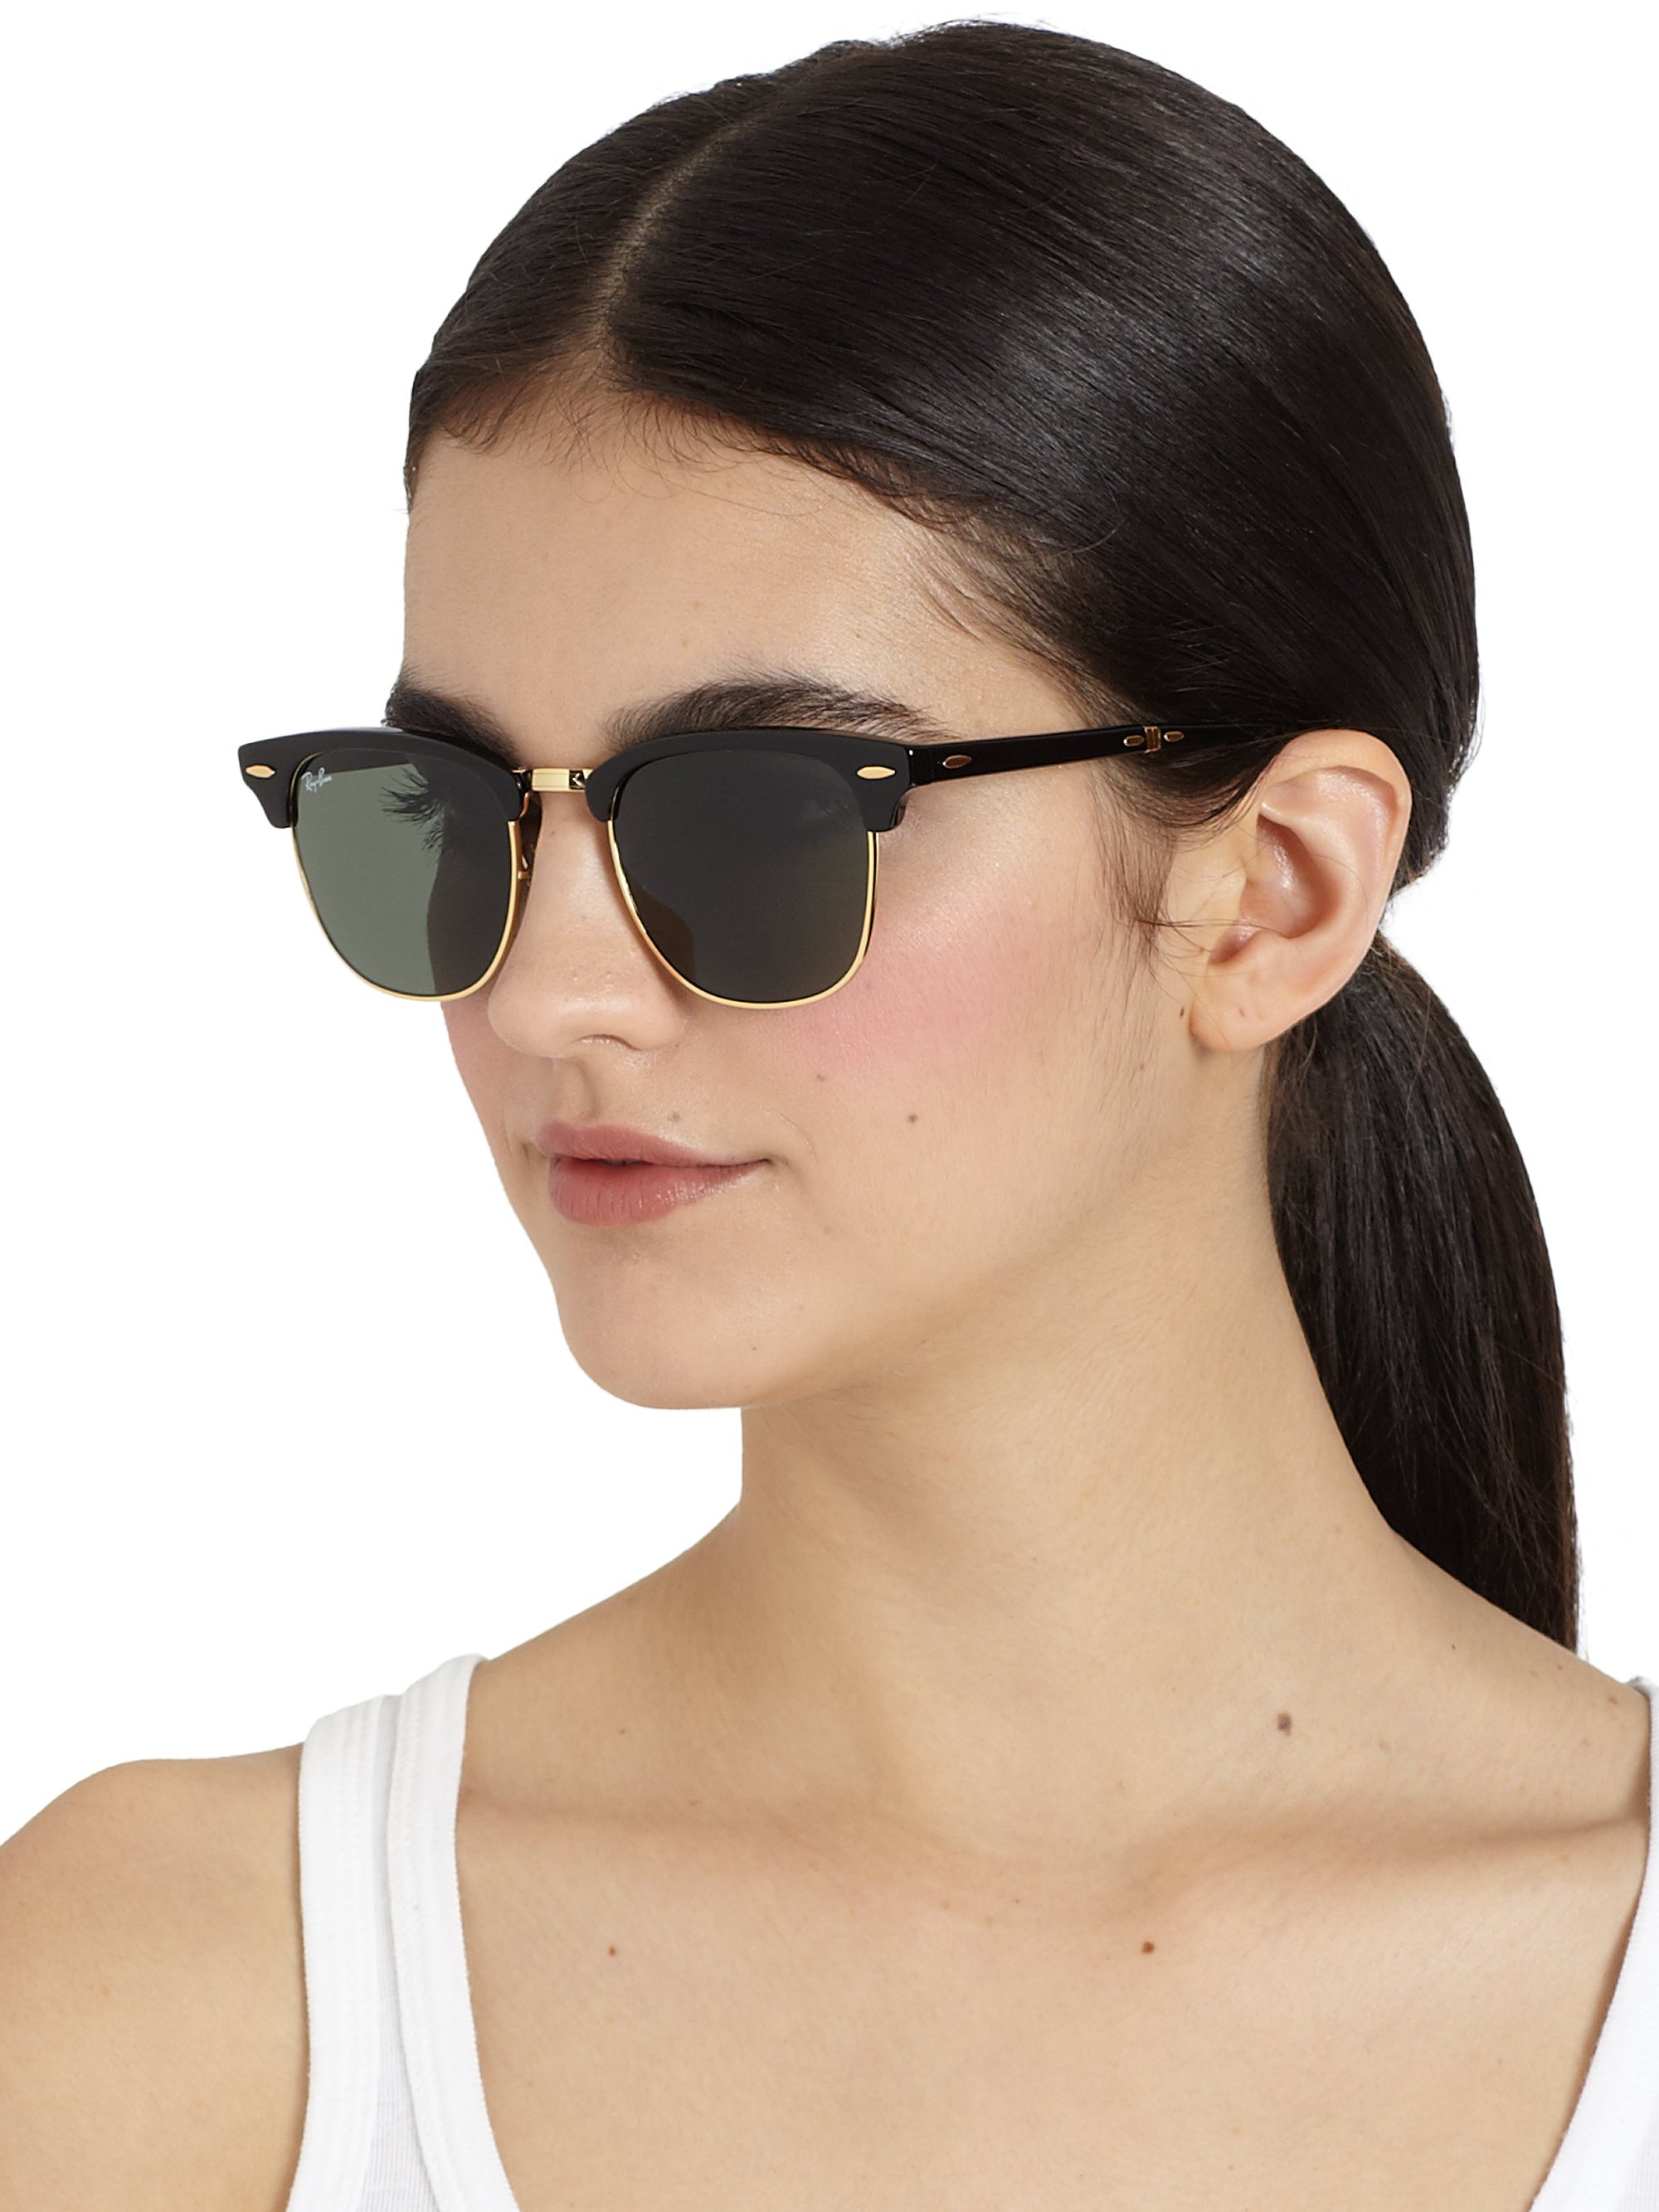 b36869eef22e9 Lyst - Ray-Ban Folding Clubmaster Sunglasses in Black